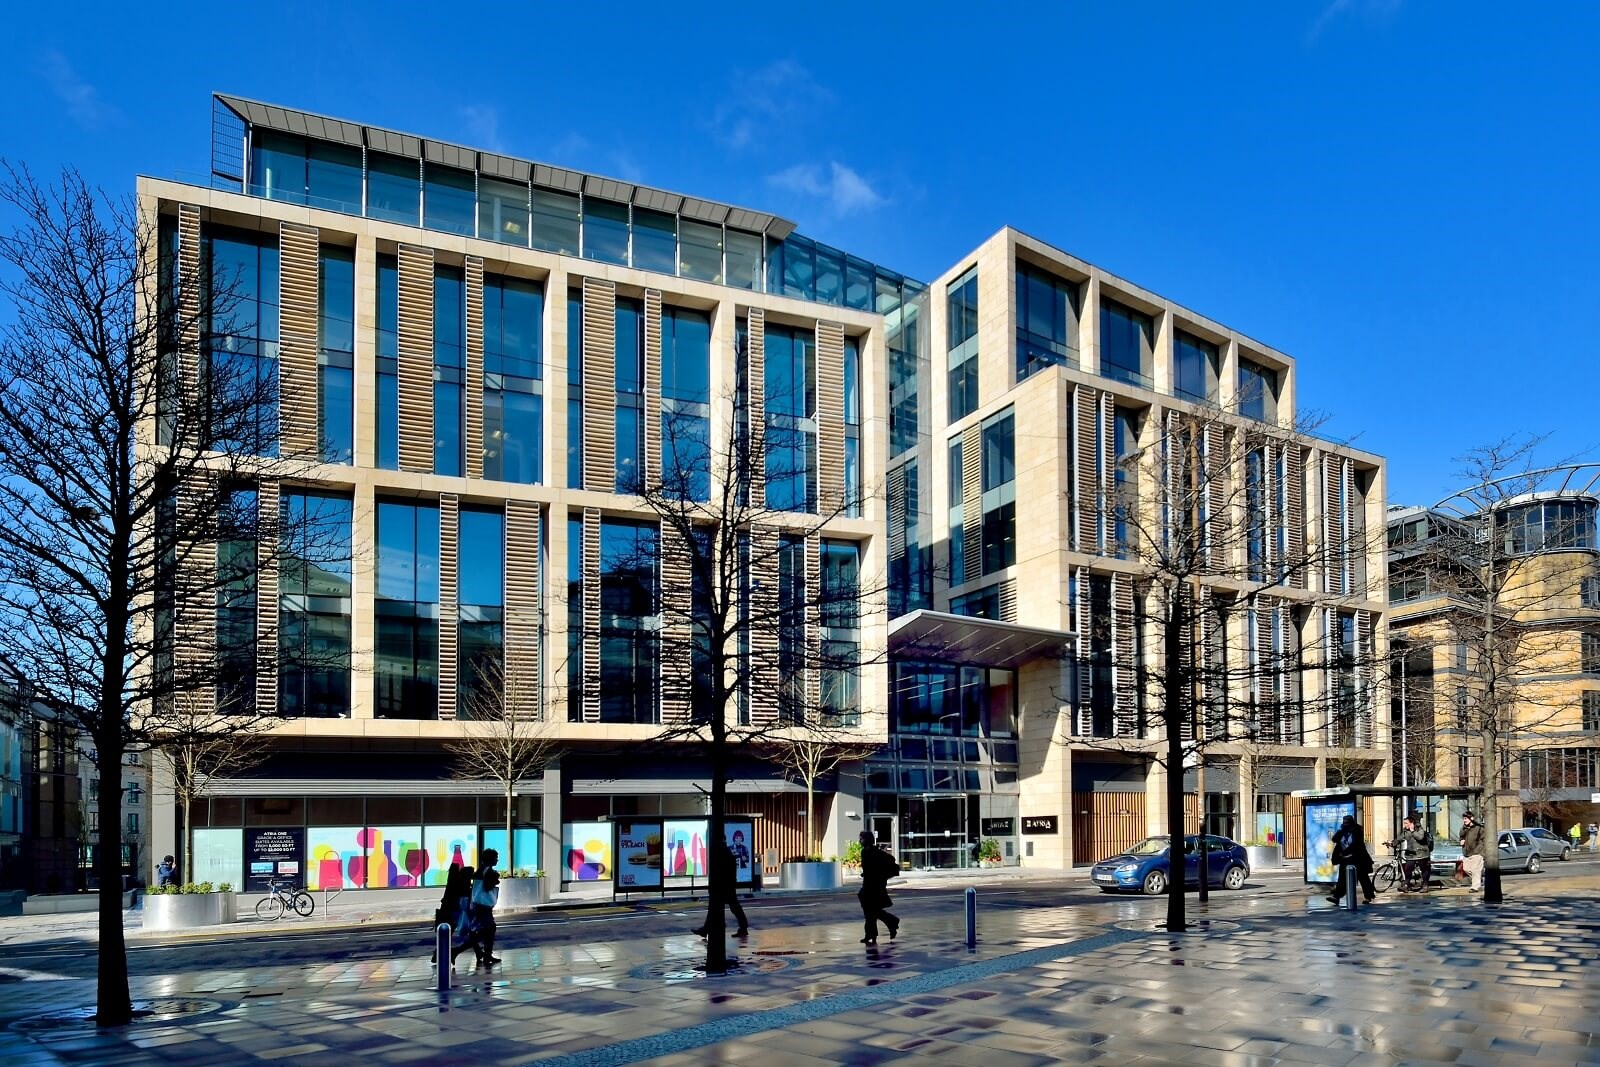 An outside view of the Atria One building in Edinburgh